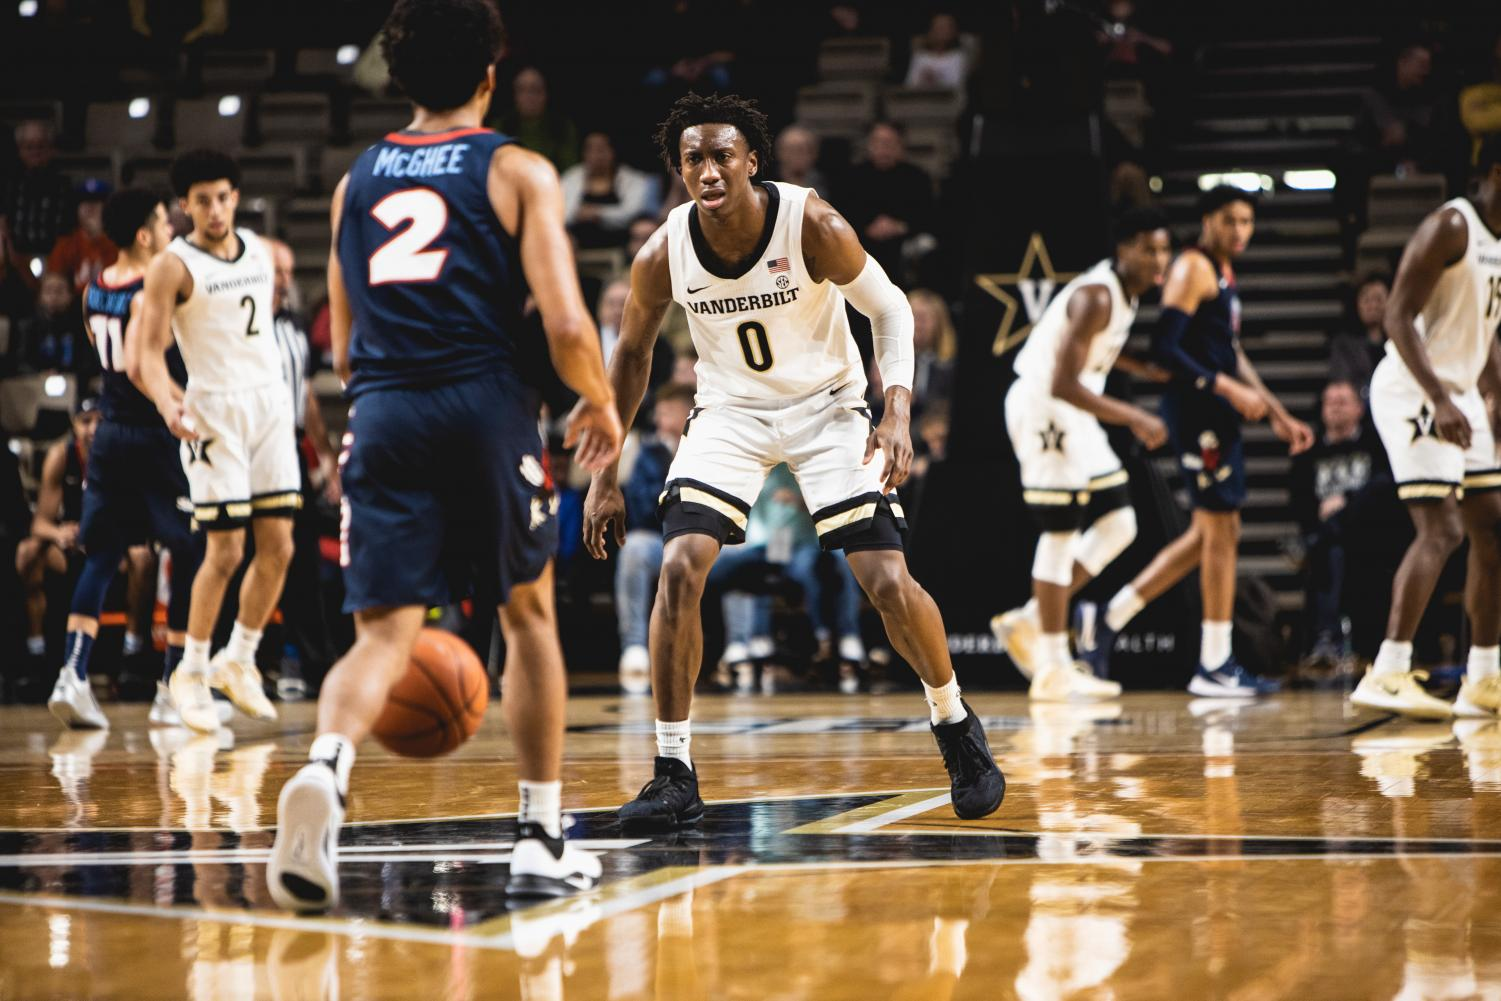 Vanderbilt has lost 5 of their last 7 games, including a matchup with Liberty on Dec. 14th.